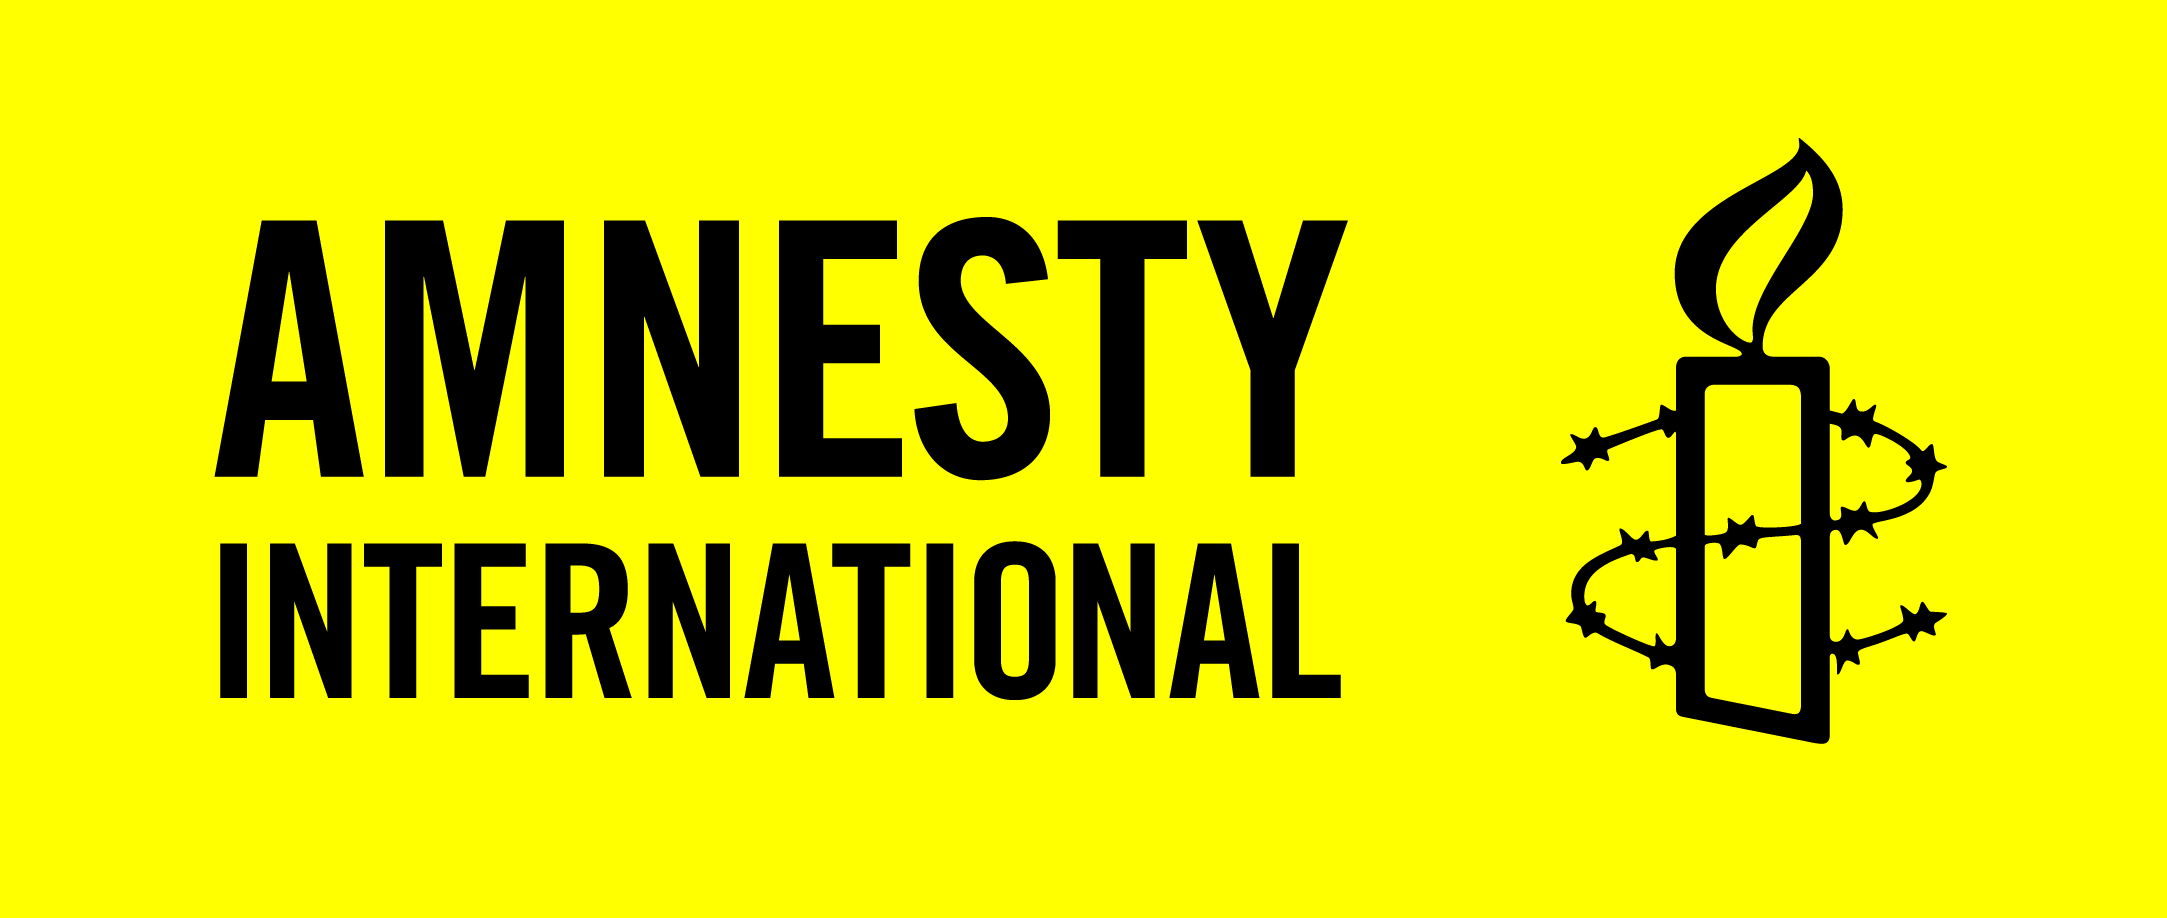 Amnesty_logo_CMYK_yellow.jpg